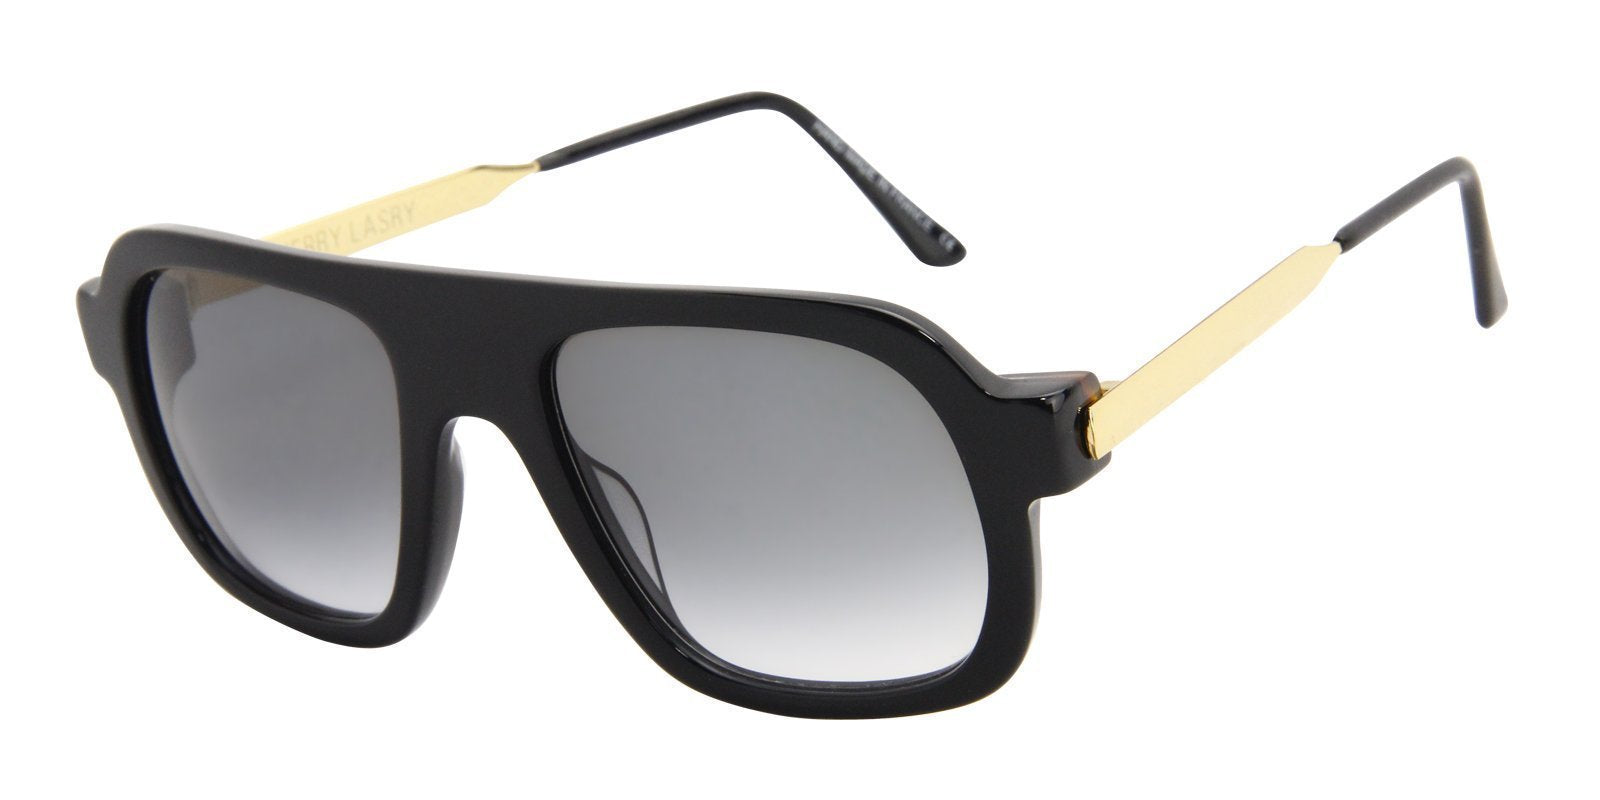 Thierry Lasry - Kurupty Black Rectangular Men, Women Sunglasses - 52mm-Sunglasses-Designer Eyes